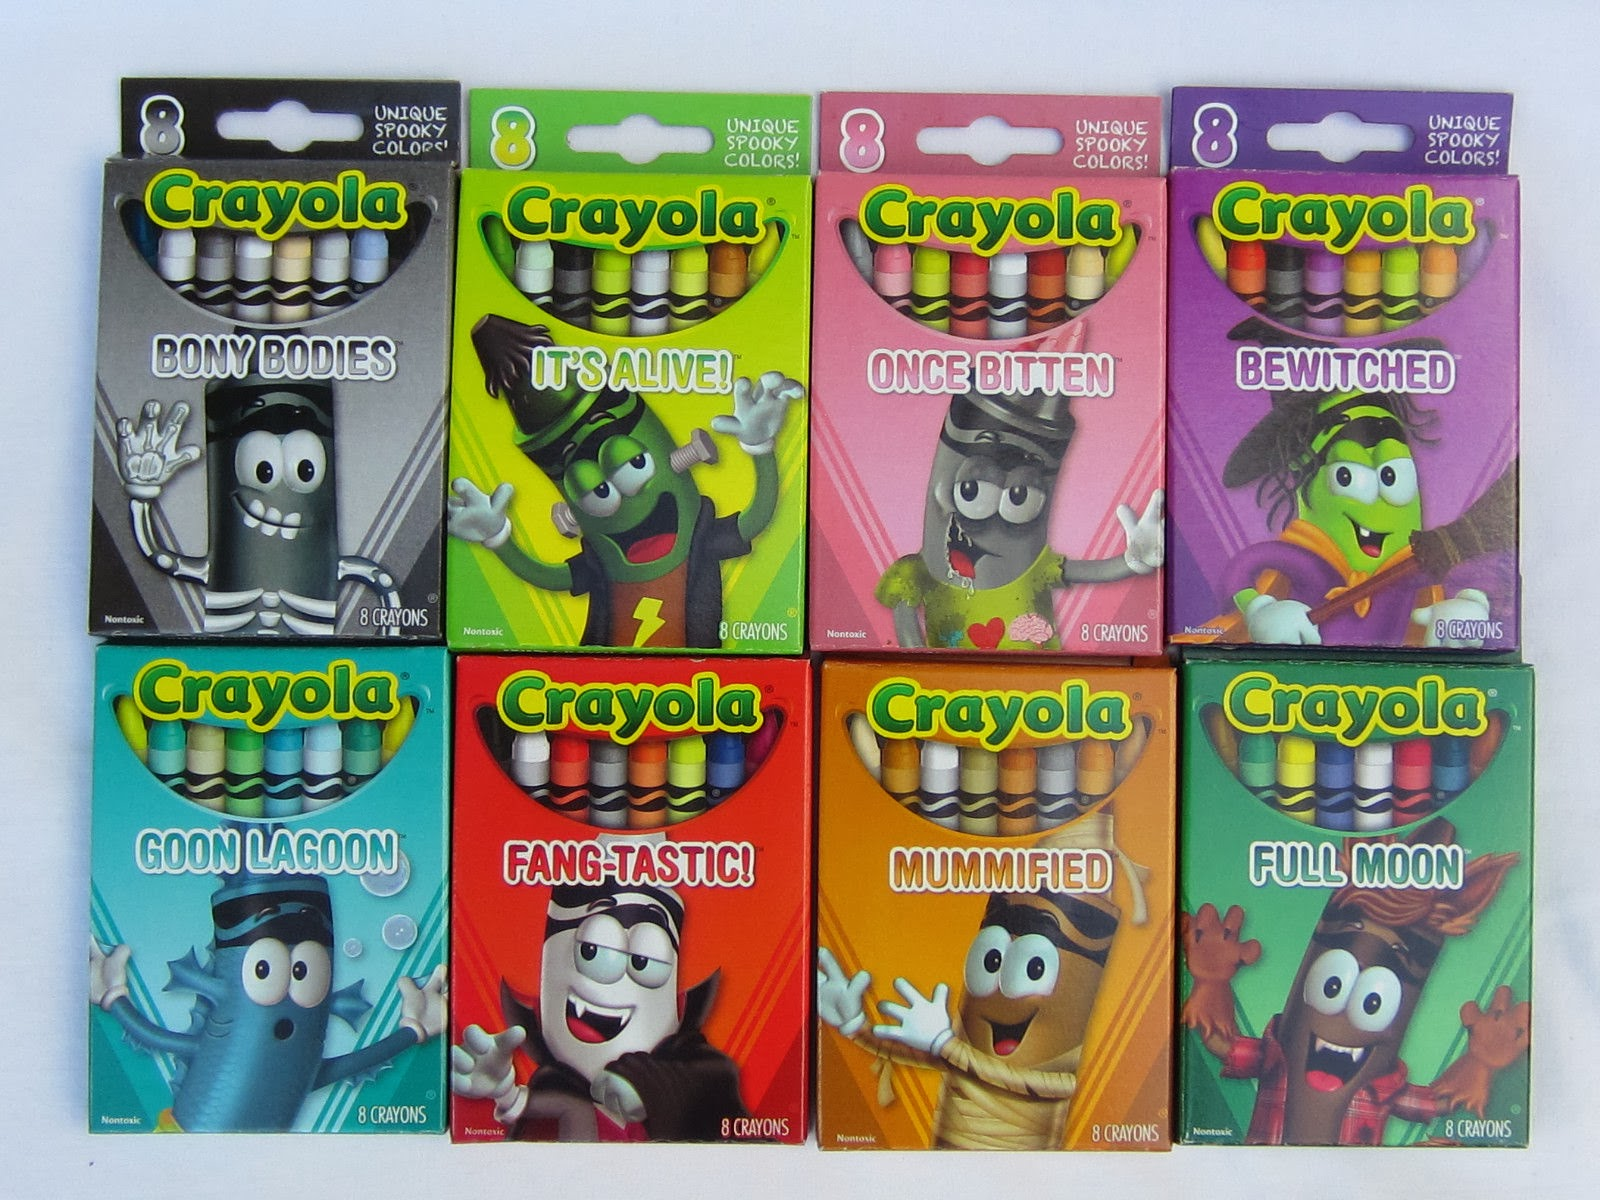 The Crayon Blog: Finally...the 2013 Crayola Halloween crayons